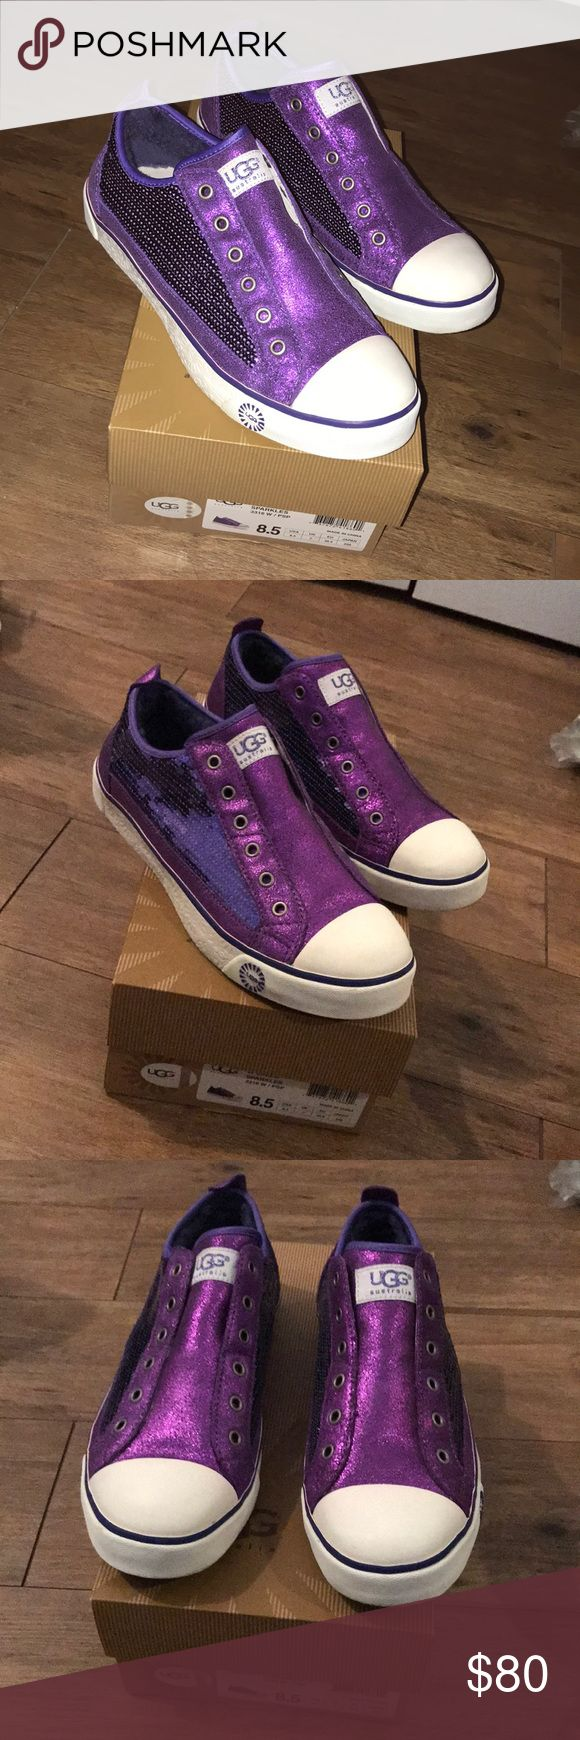 Purple UGG Laela Sparkles Sneakers UGG Laela Sparkles Sneakers. Women's size 8.5. Purple sparkle material and purple sequin with white easy to clean toes and soles (easy to wipe off any dirt). Purple fur lining inside. Only worn 1-2 times, so look and feel brand new. Comes with original box.   As always, happy to look at reasonable offers! UGG Shoes Sneakers